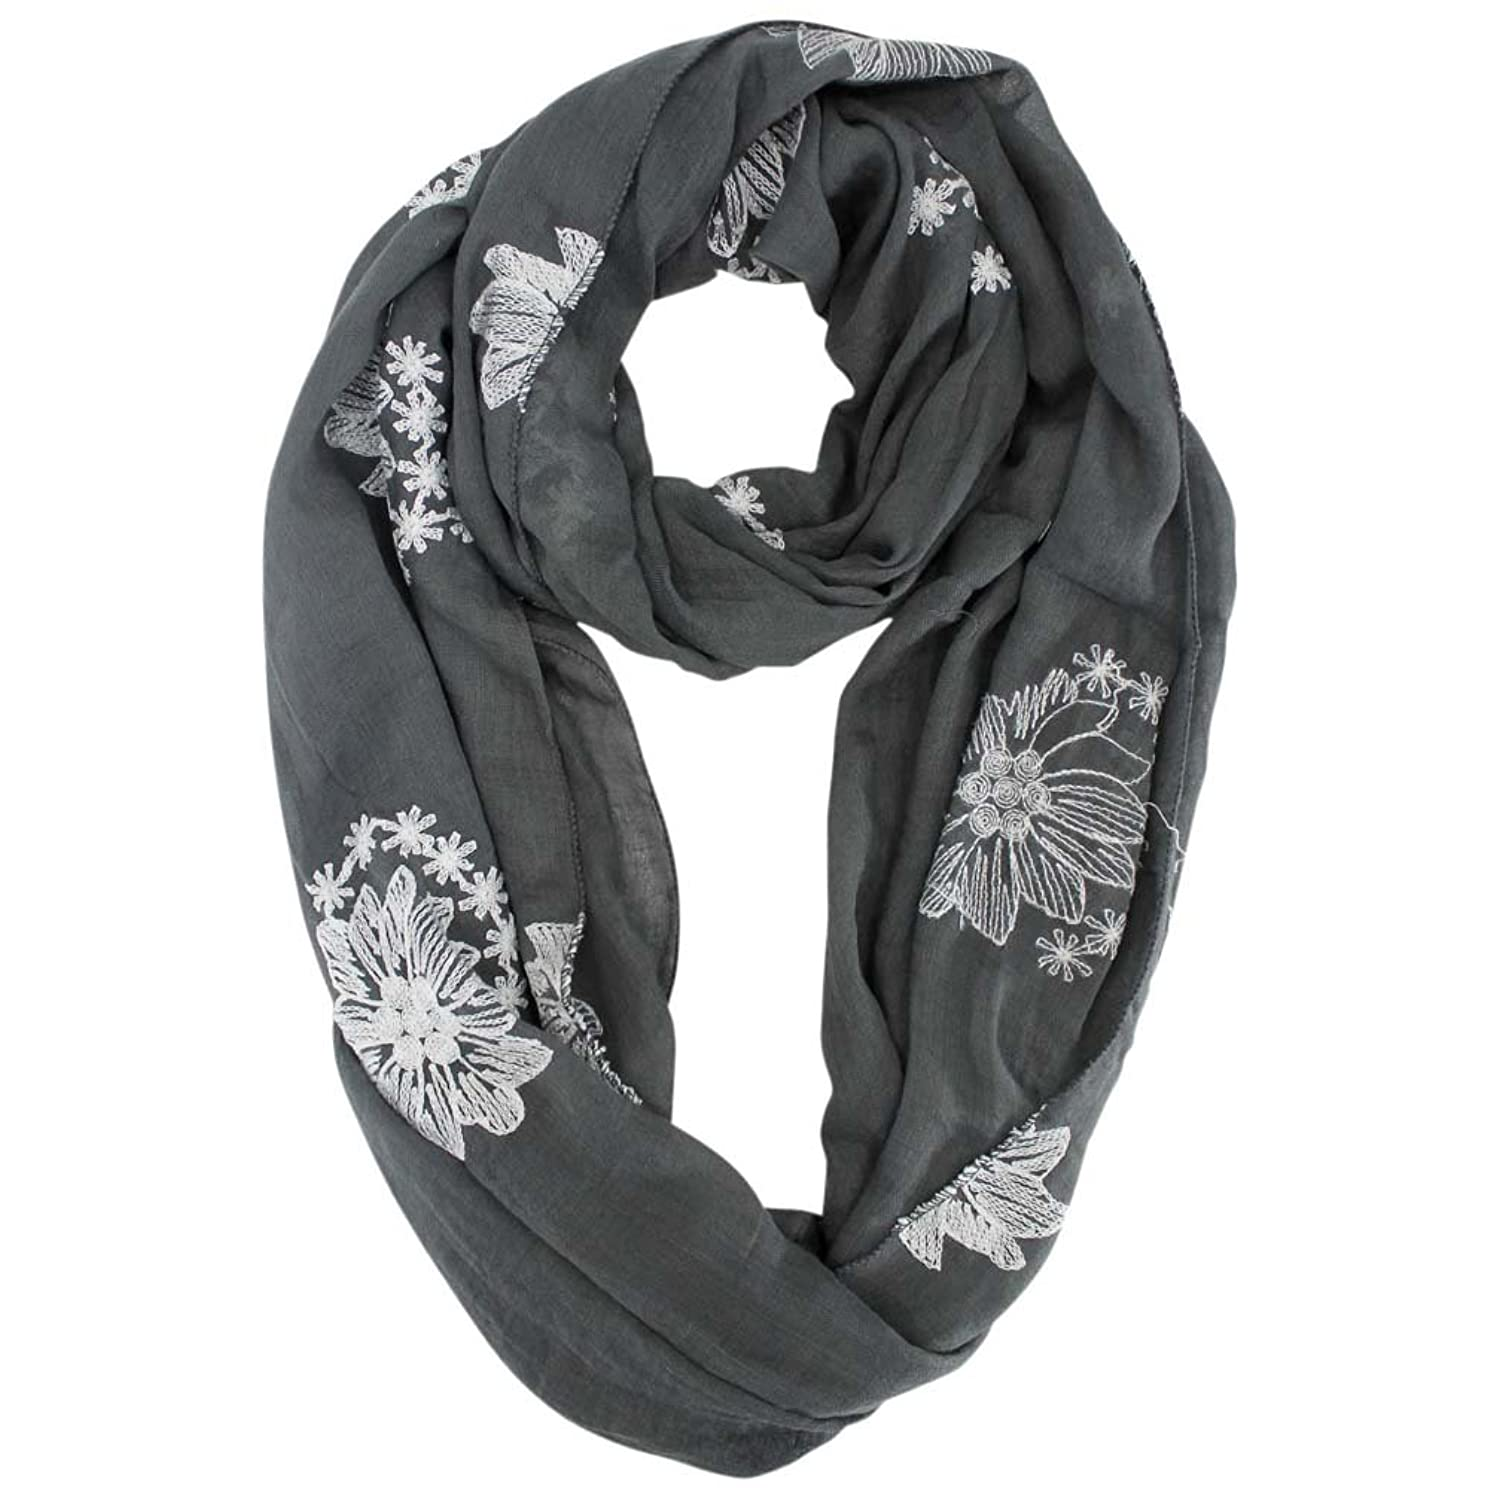 Luxury Divas Silky Lightweight Circle Scarf With Floral Embroidery